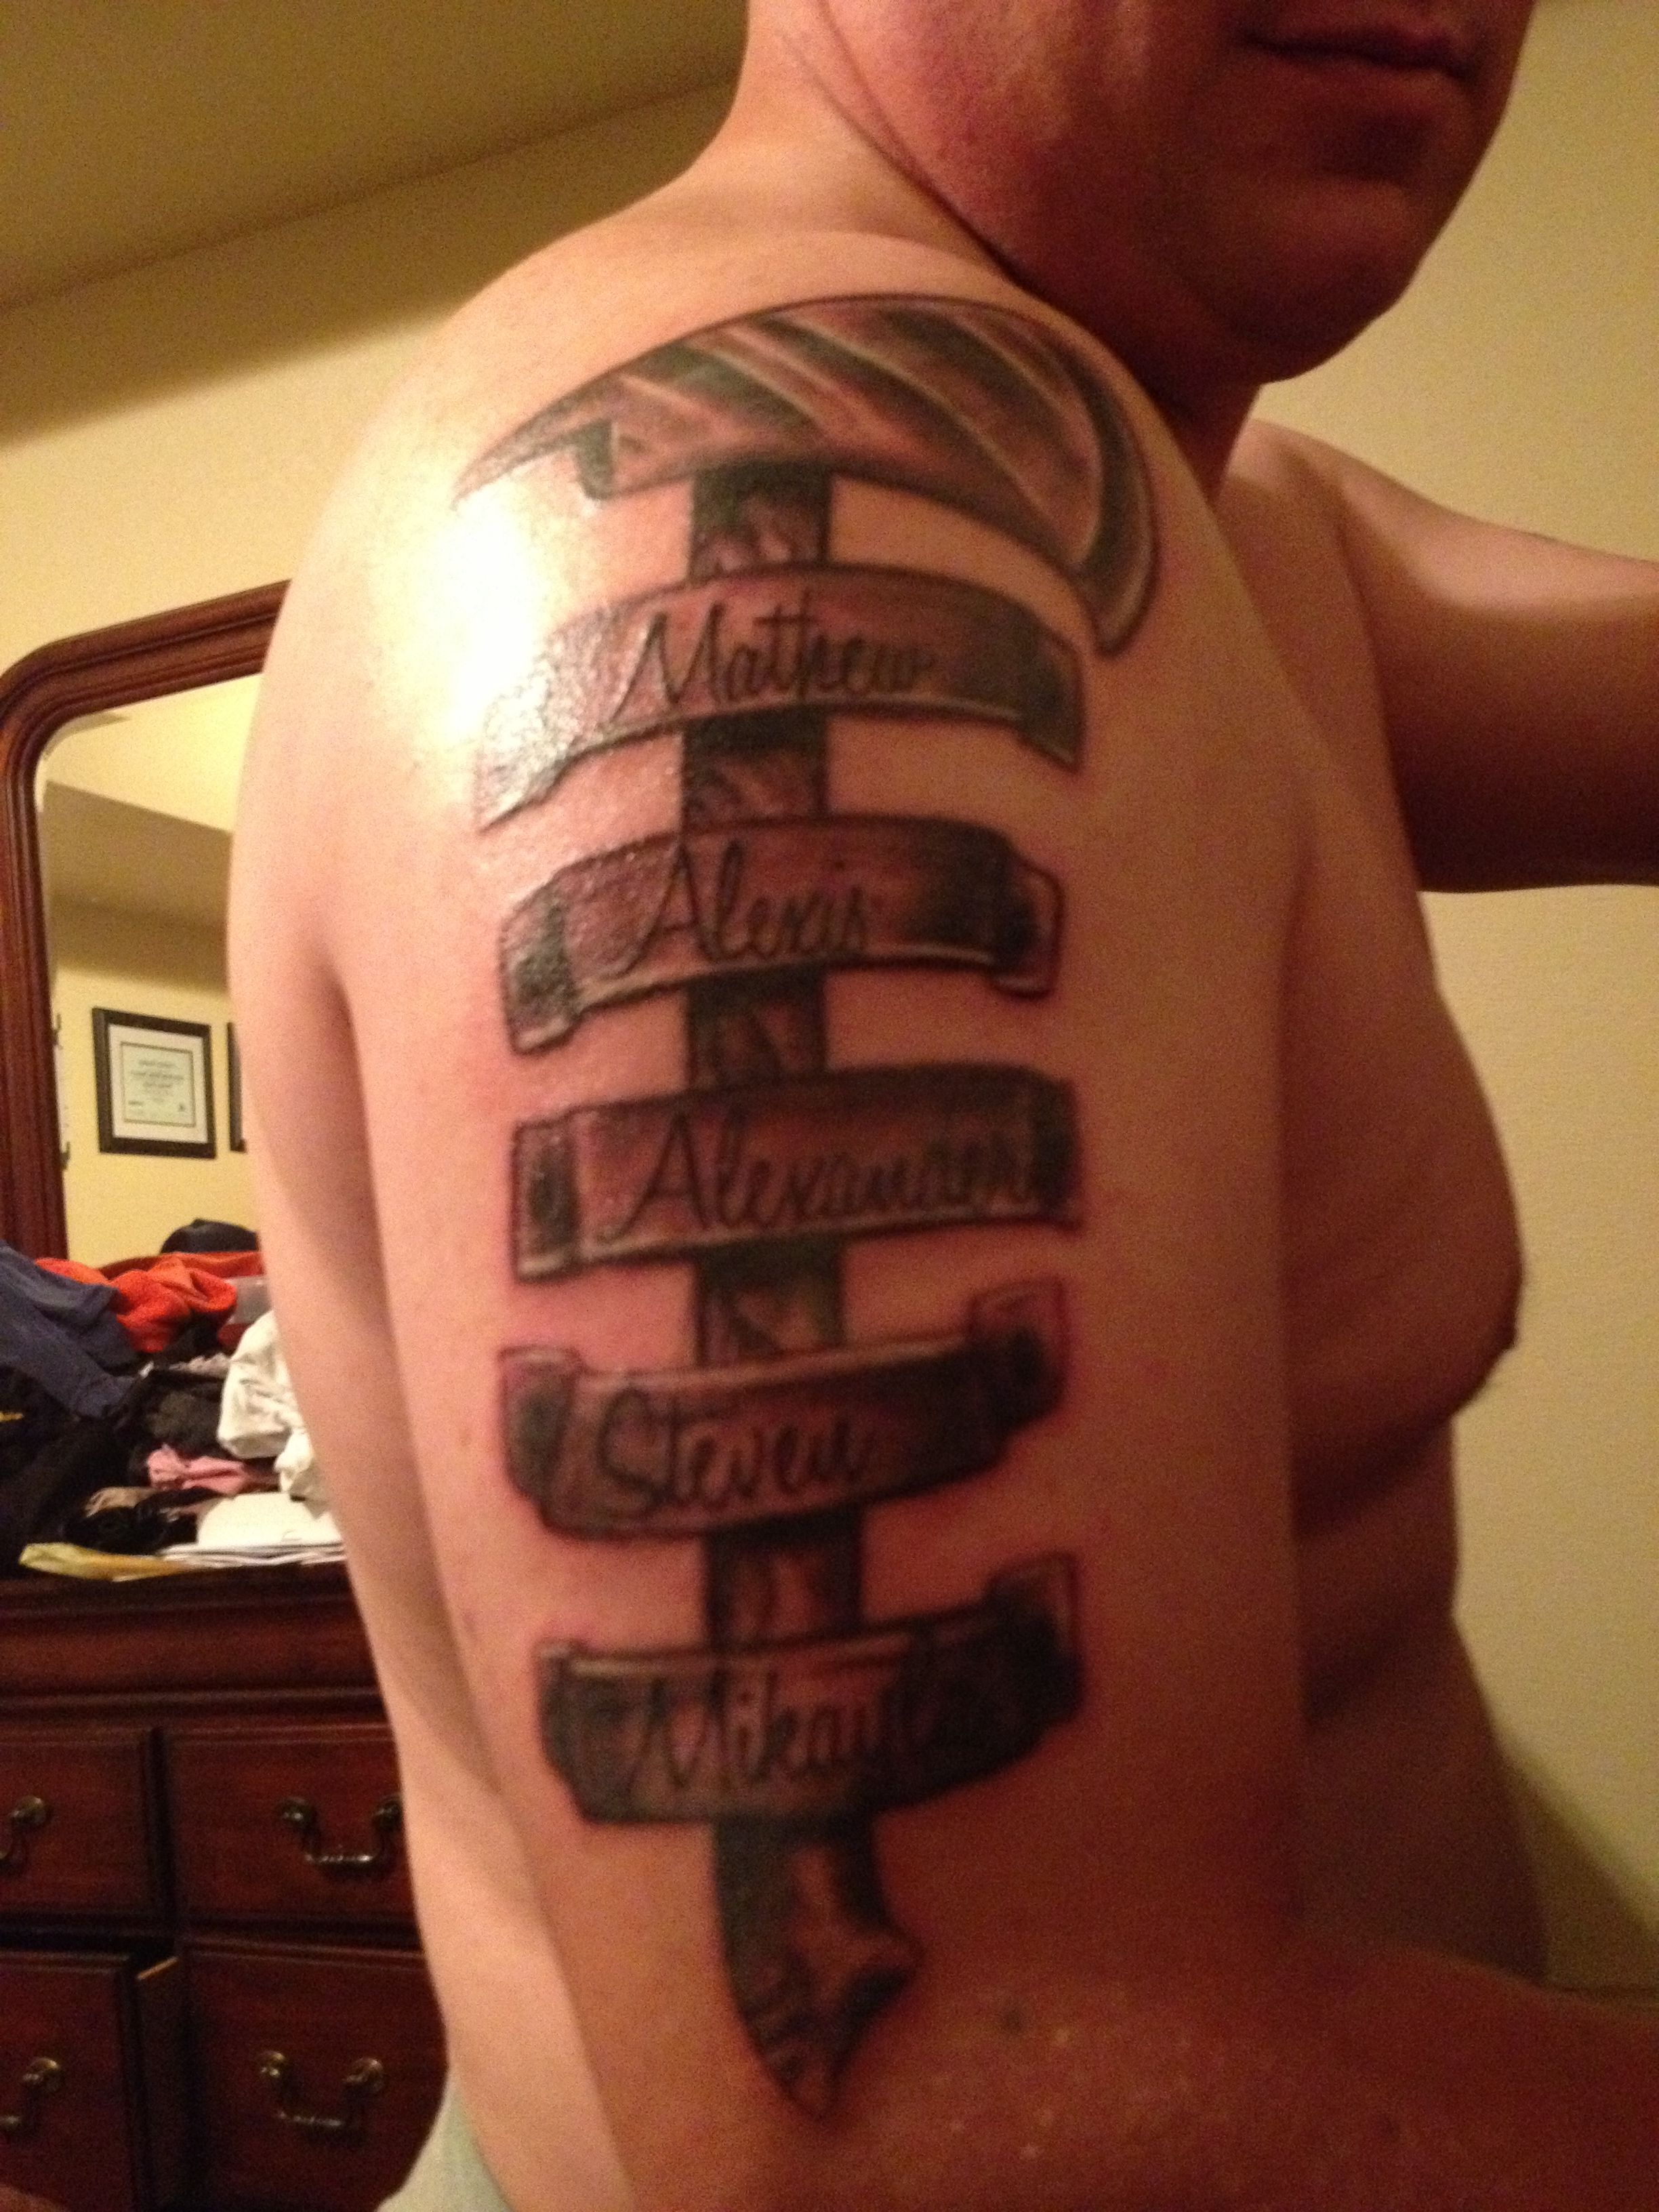 Firefighter Tattoo With All The Kids Names Fire Fighter Tattoos Tattoos Firefighter Tattoo